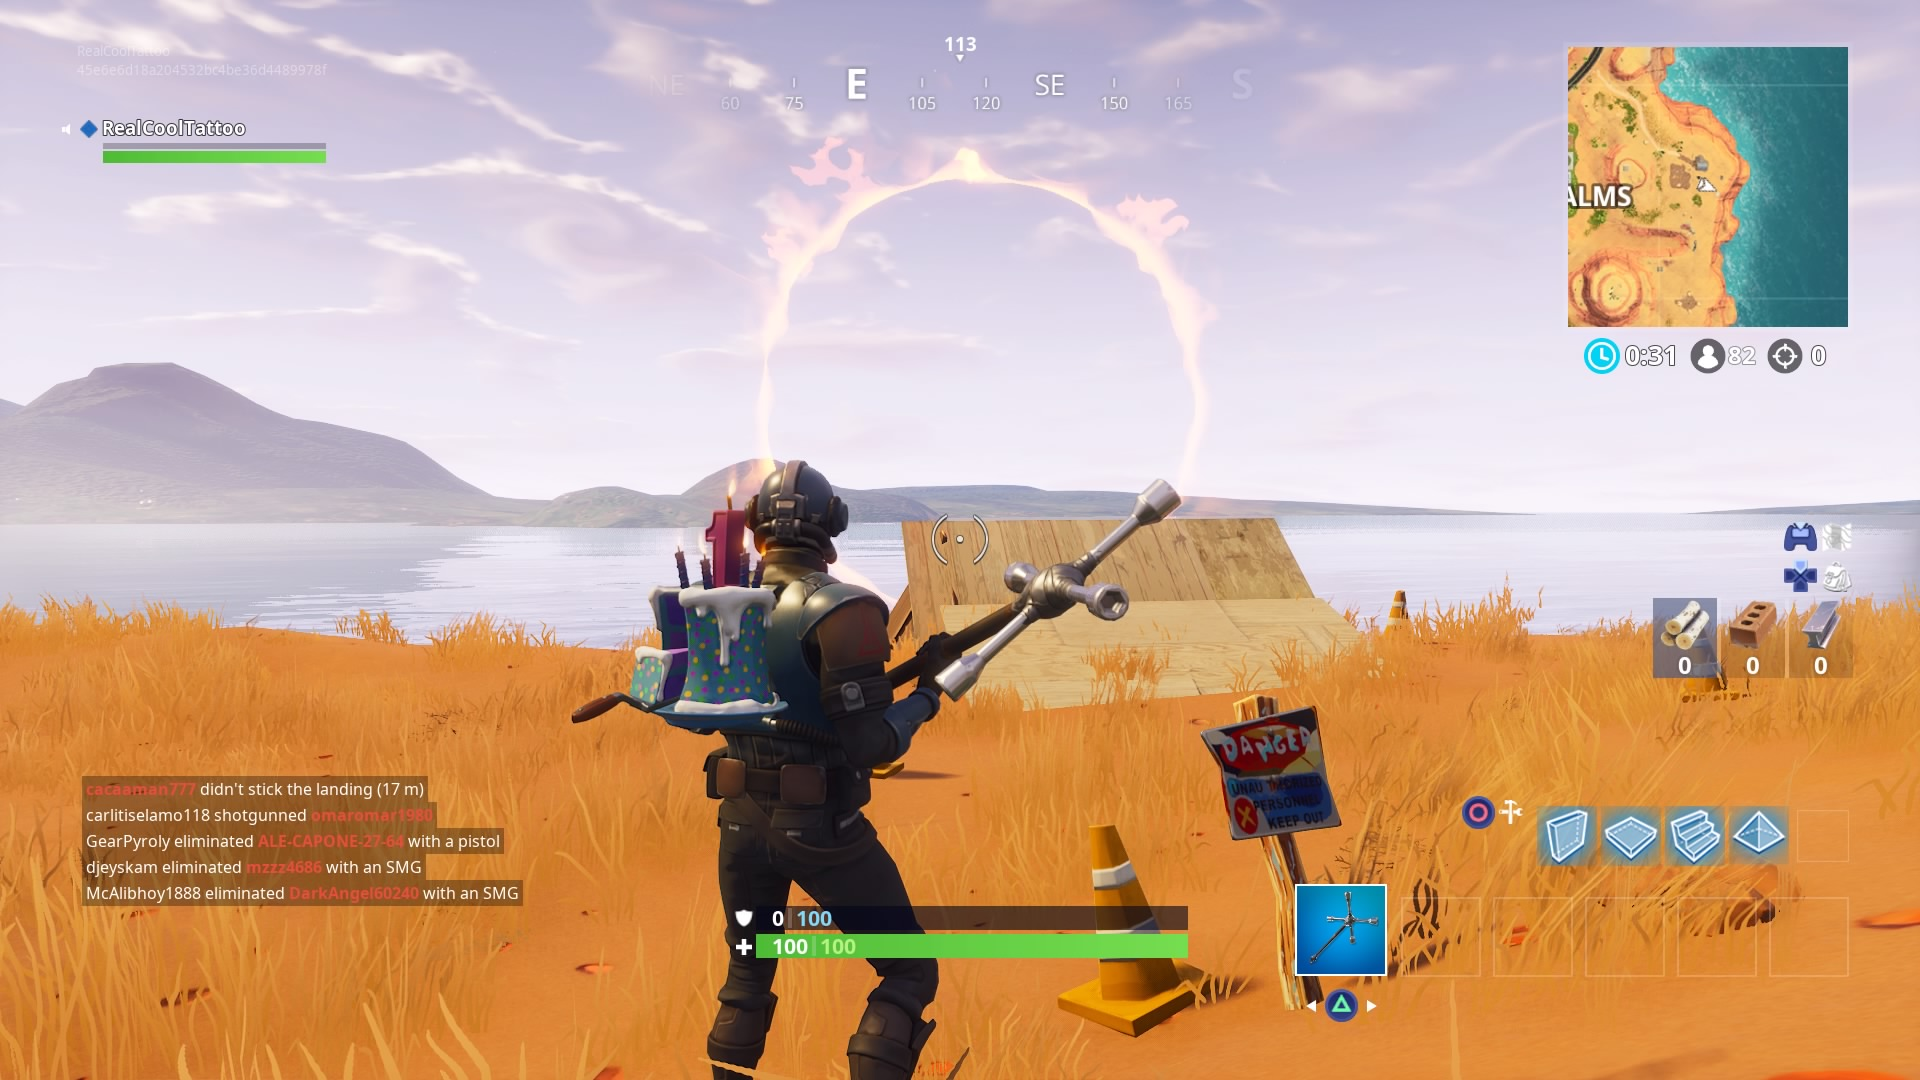 Fortnite Flaming Hoop Locations Where To Jump Through Flaming - fortnite flaming hoop locations where to jump through flaming hoops with a shopping cart or atk vg247